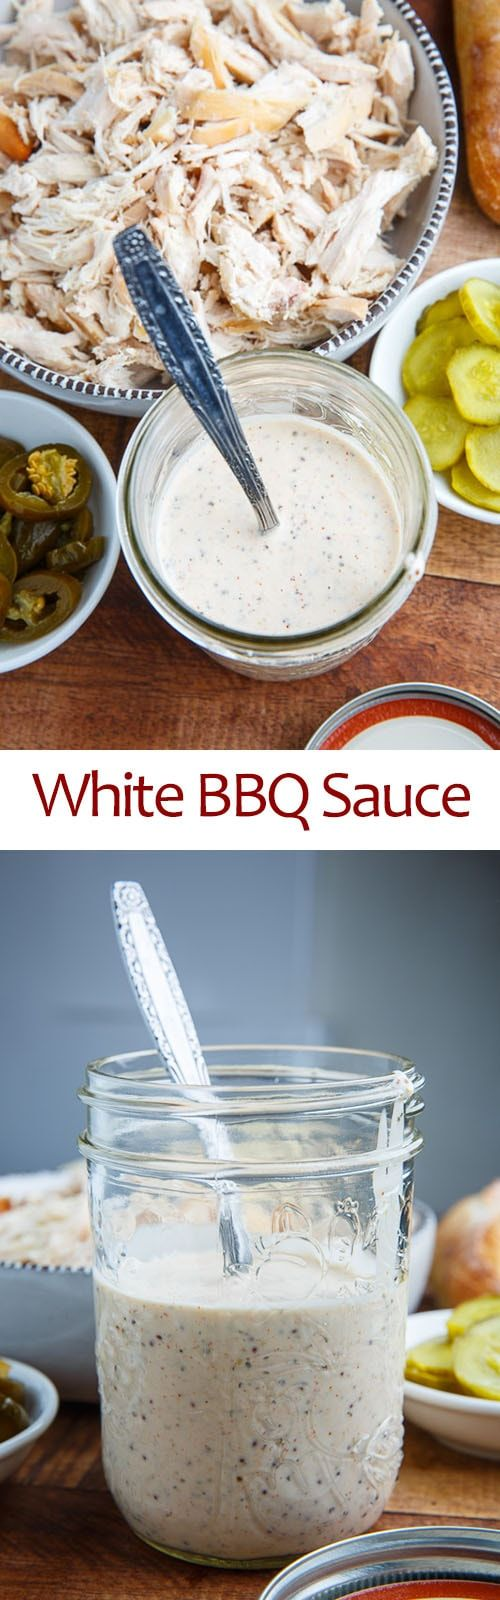 White BBQ Sauce -- i had white bbq sauce on smoked chicken wings at a great bbq joint near Charleston, SC and that is where i fell in love with it.